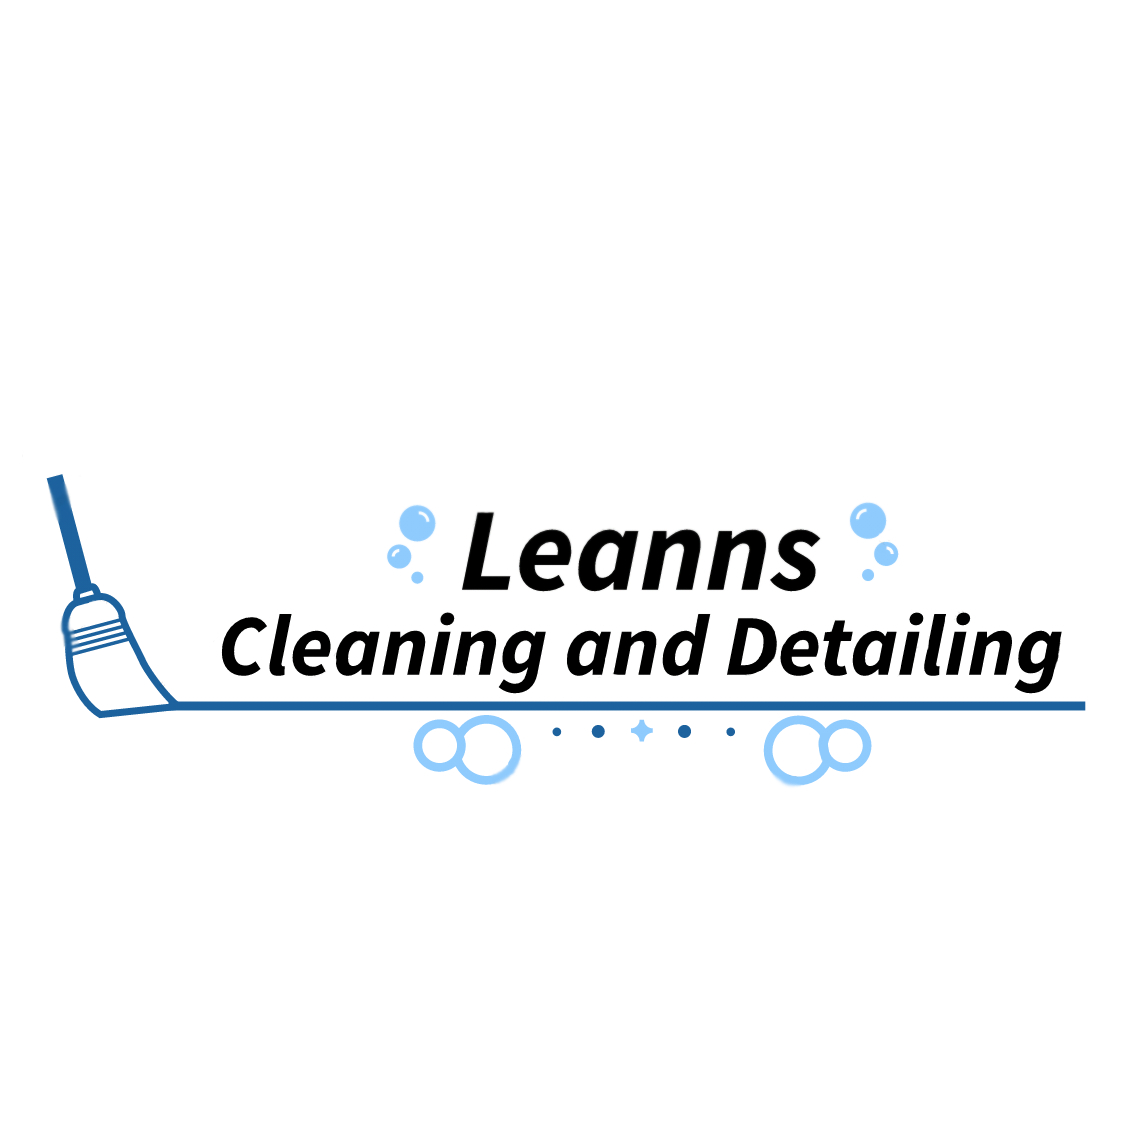 Leanns cleaning and detailing